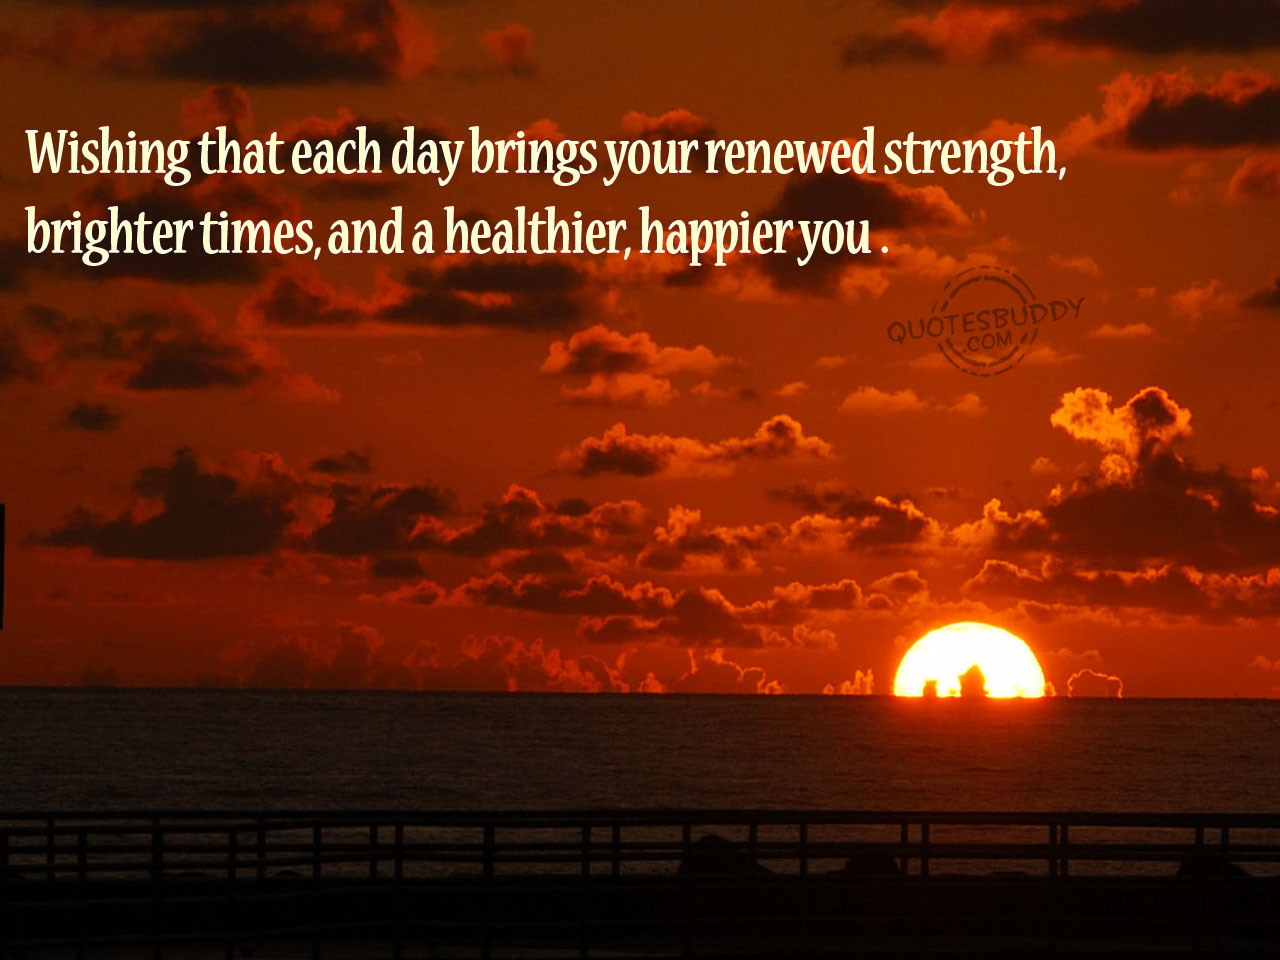 Wishing that Each Day Brings Your Renewed Strength,brighter times and a healthier,happier You ~ Get Well Soon Quote